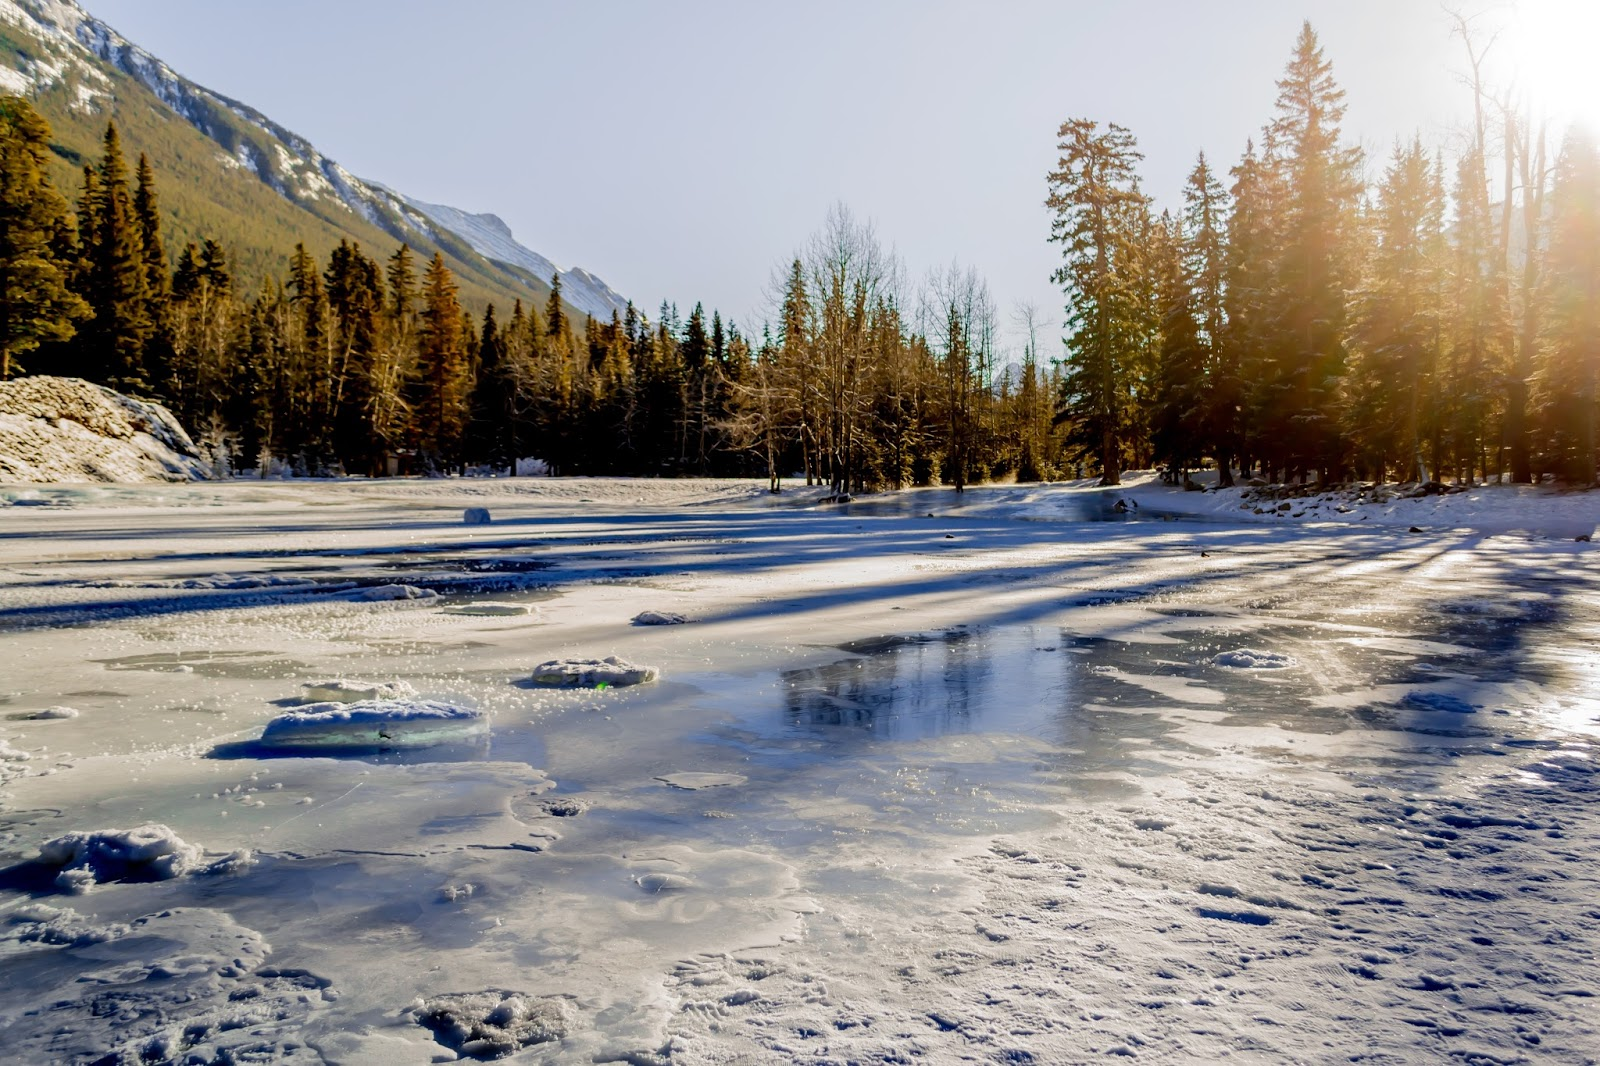 Frozen rivers and Lakes in Alberta near Lake Louise